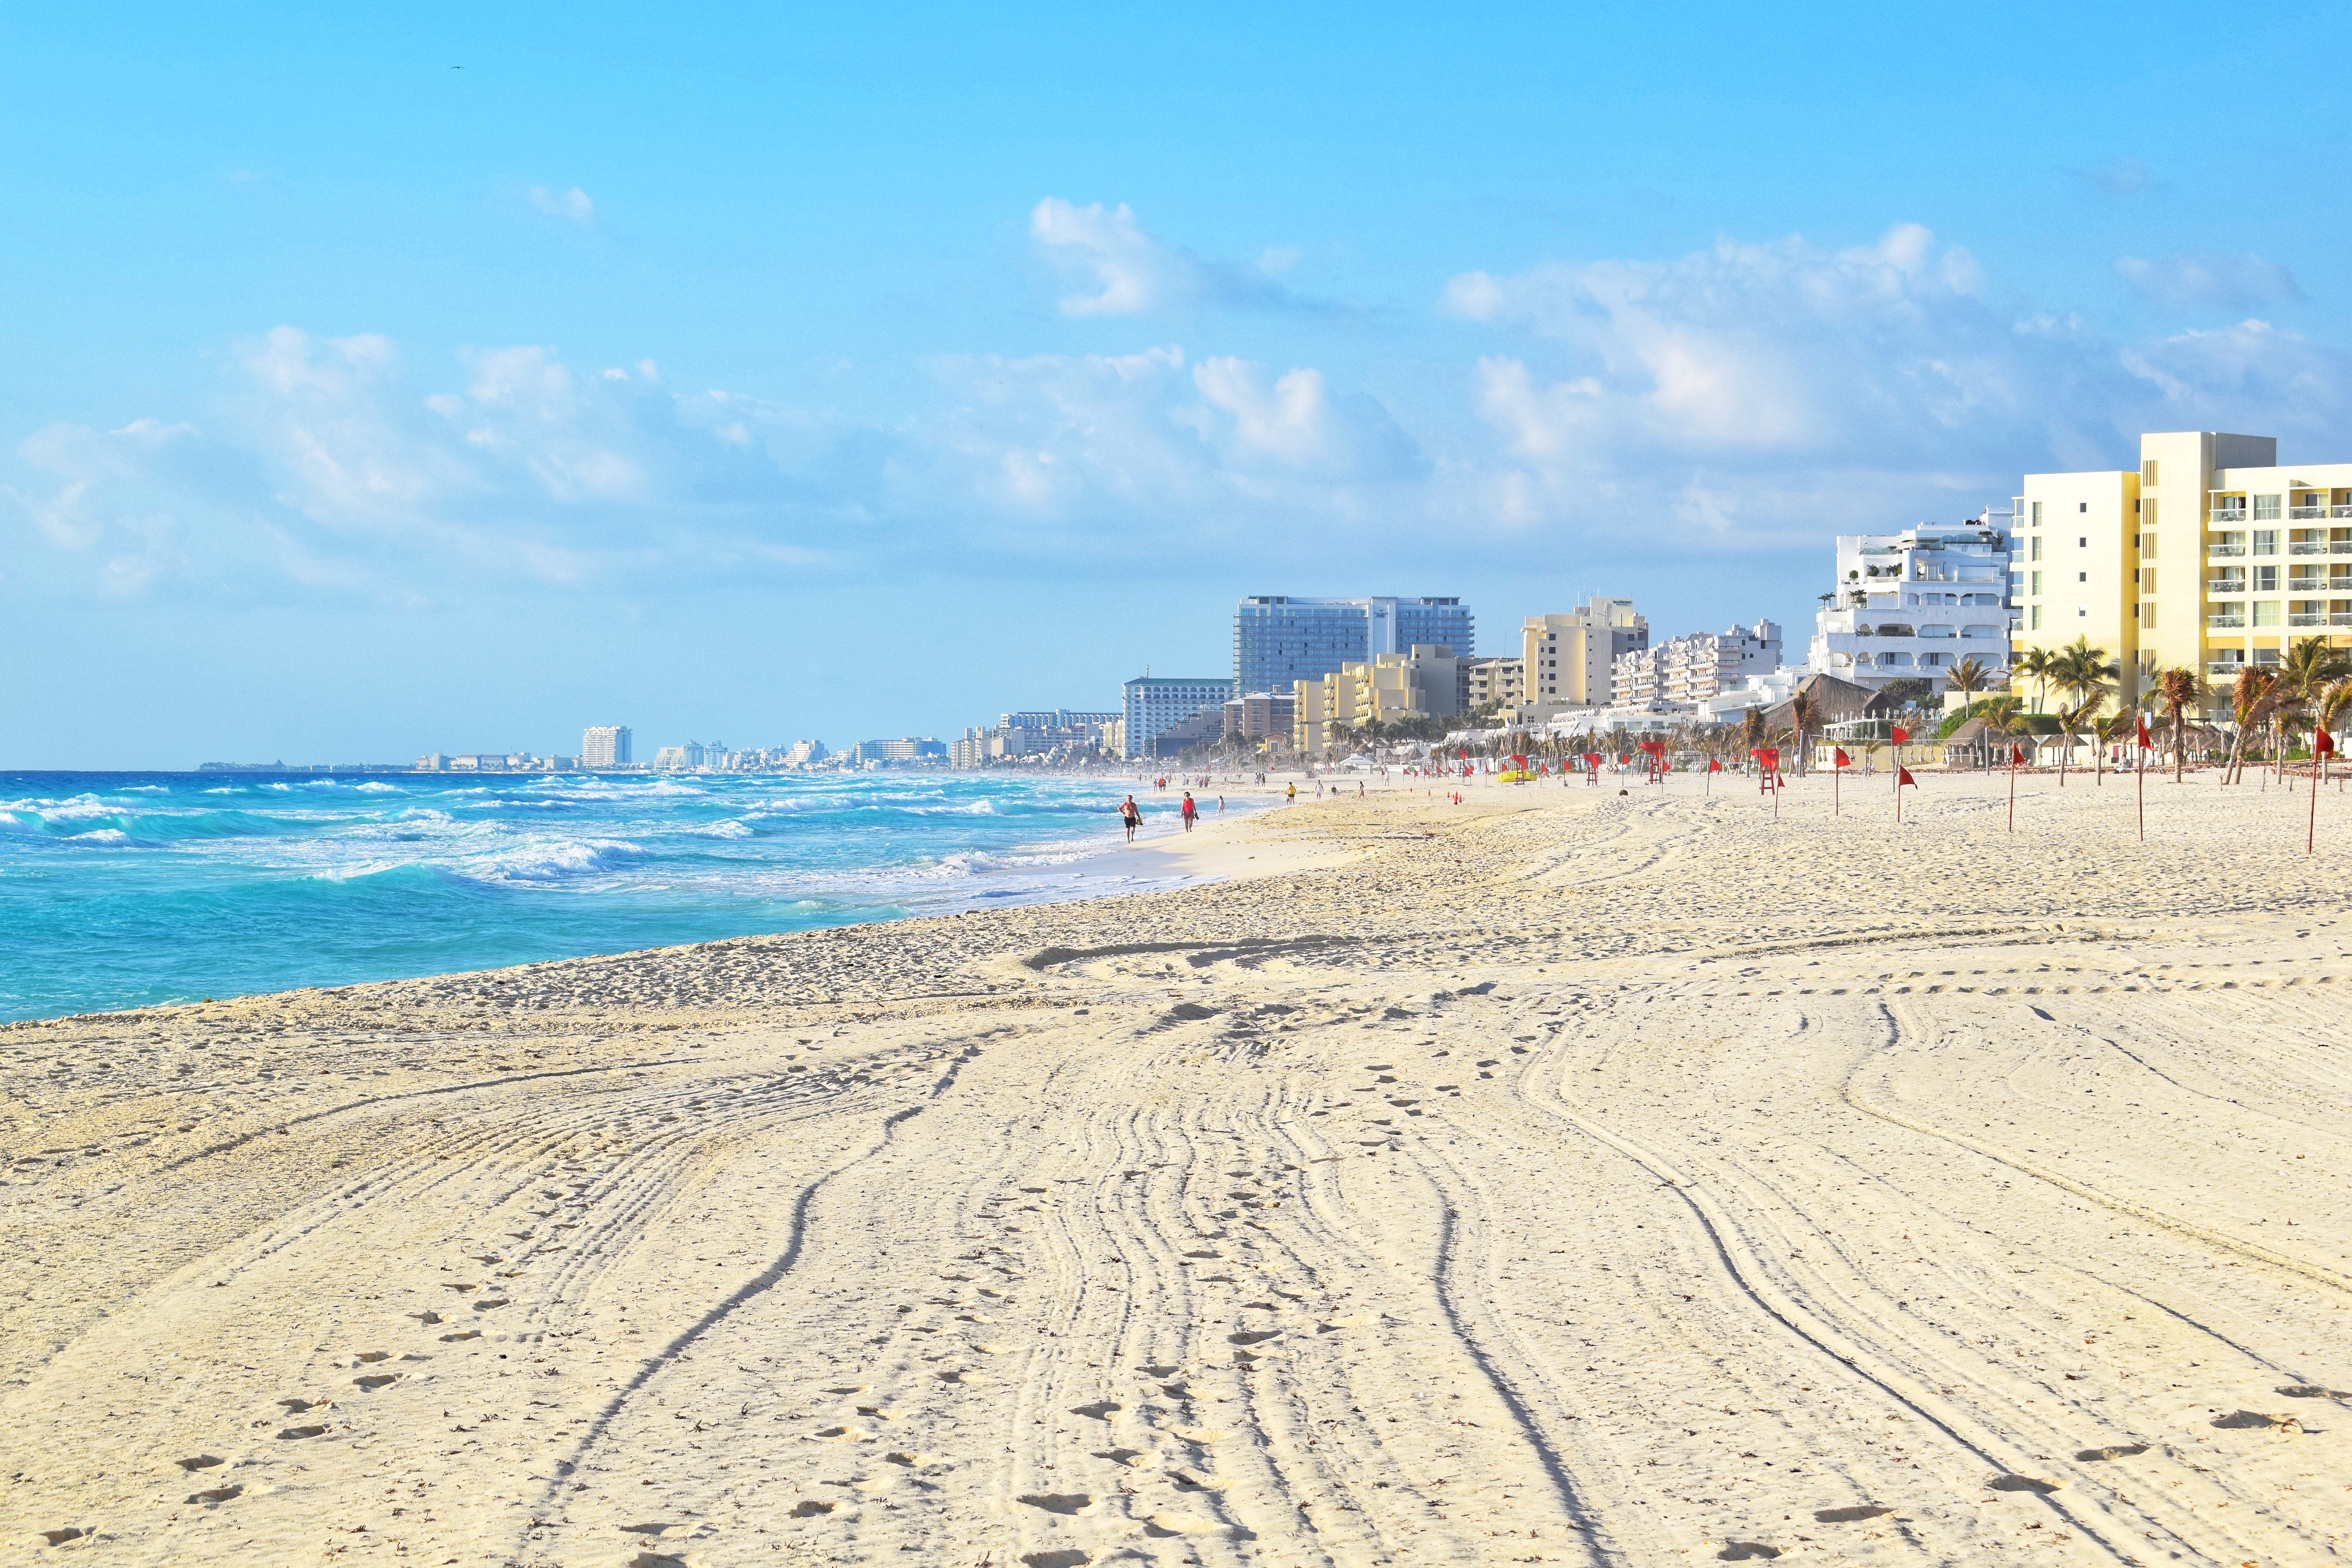 white sand beaches of cancun mexico, paradise island